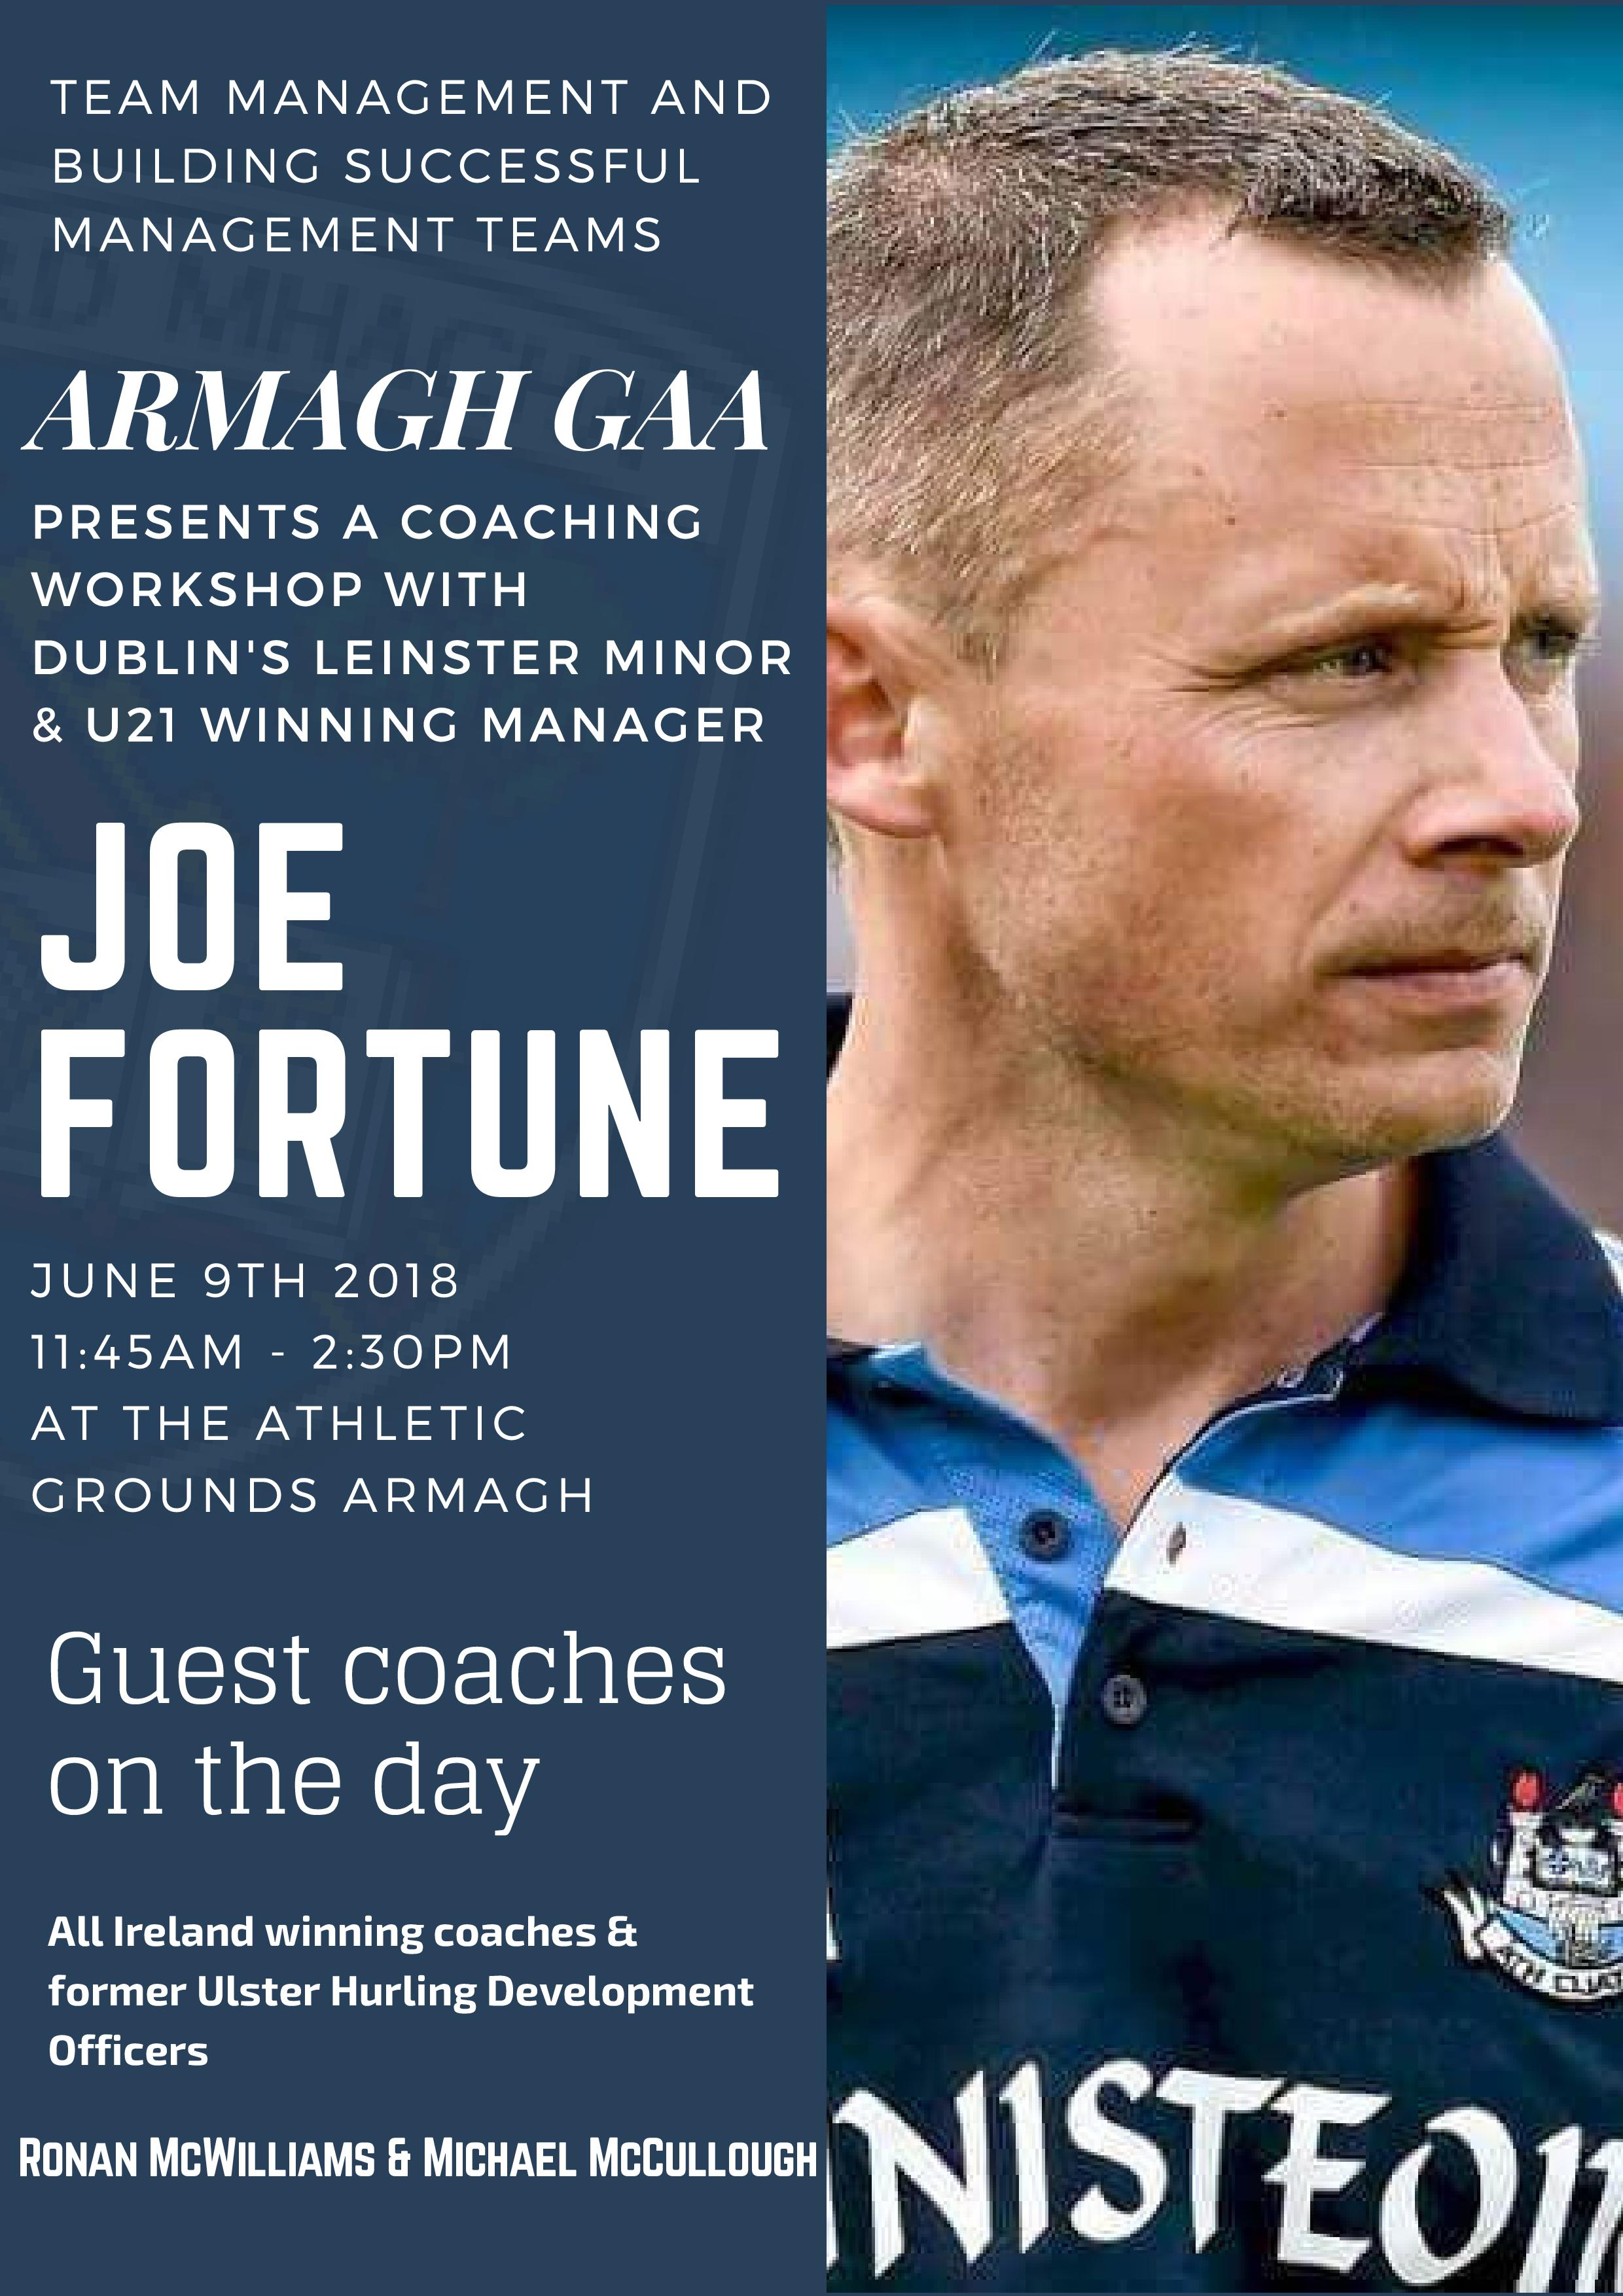 Coaching Workshop with Joe Fortune Dublin's Leinster Minor & U21 winning manager